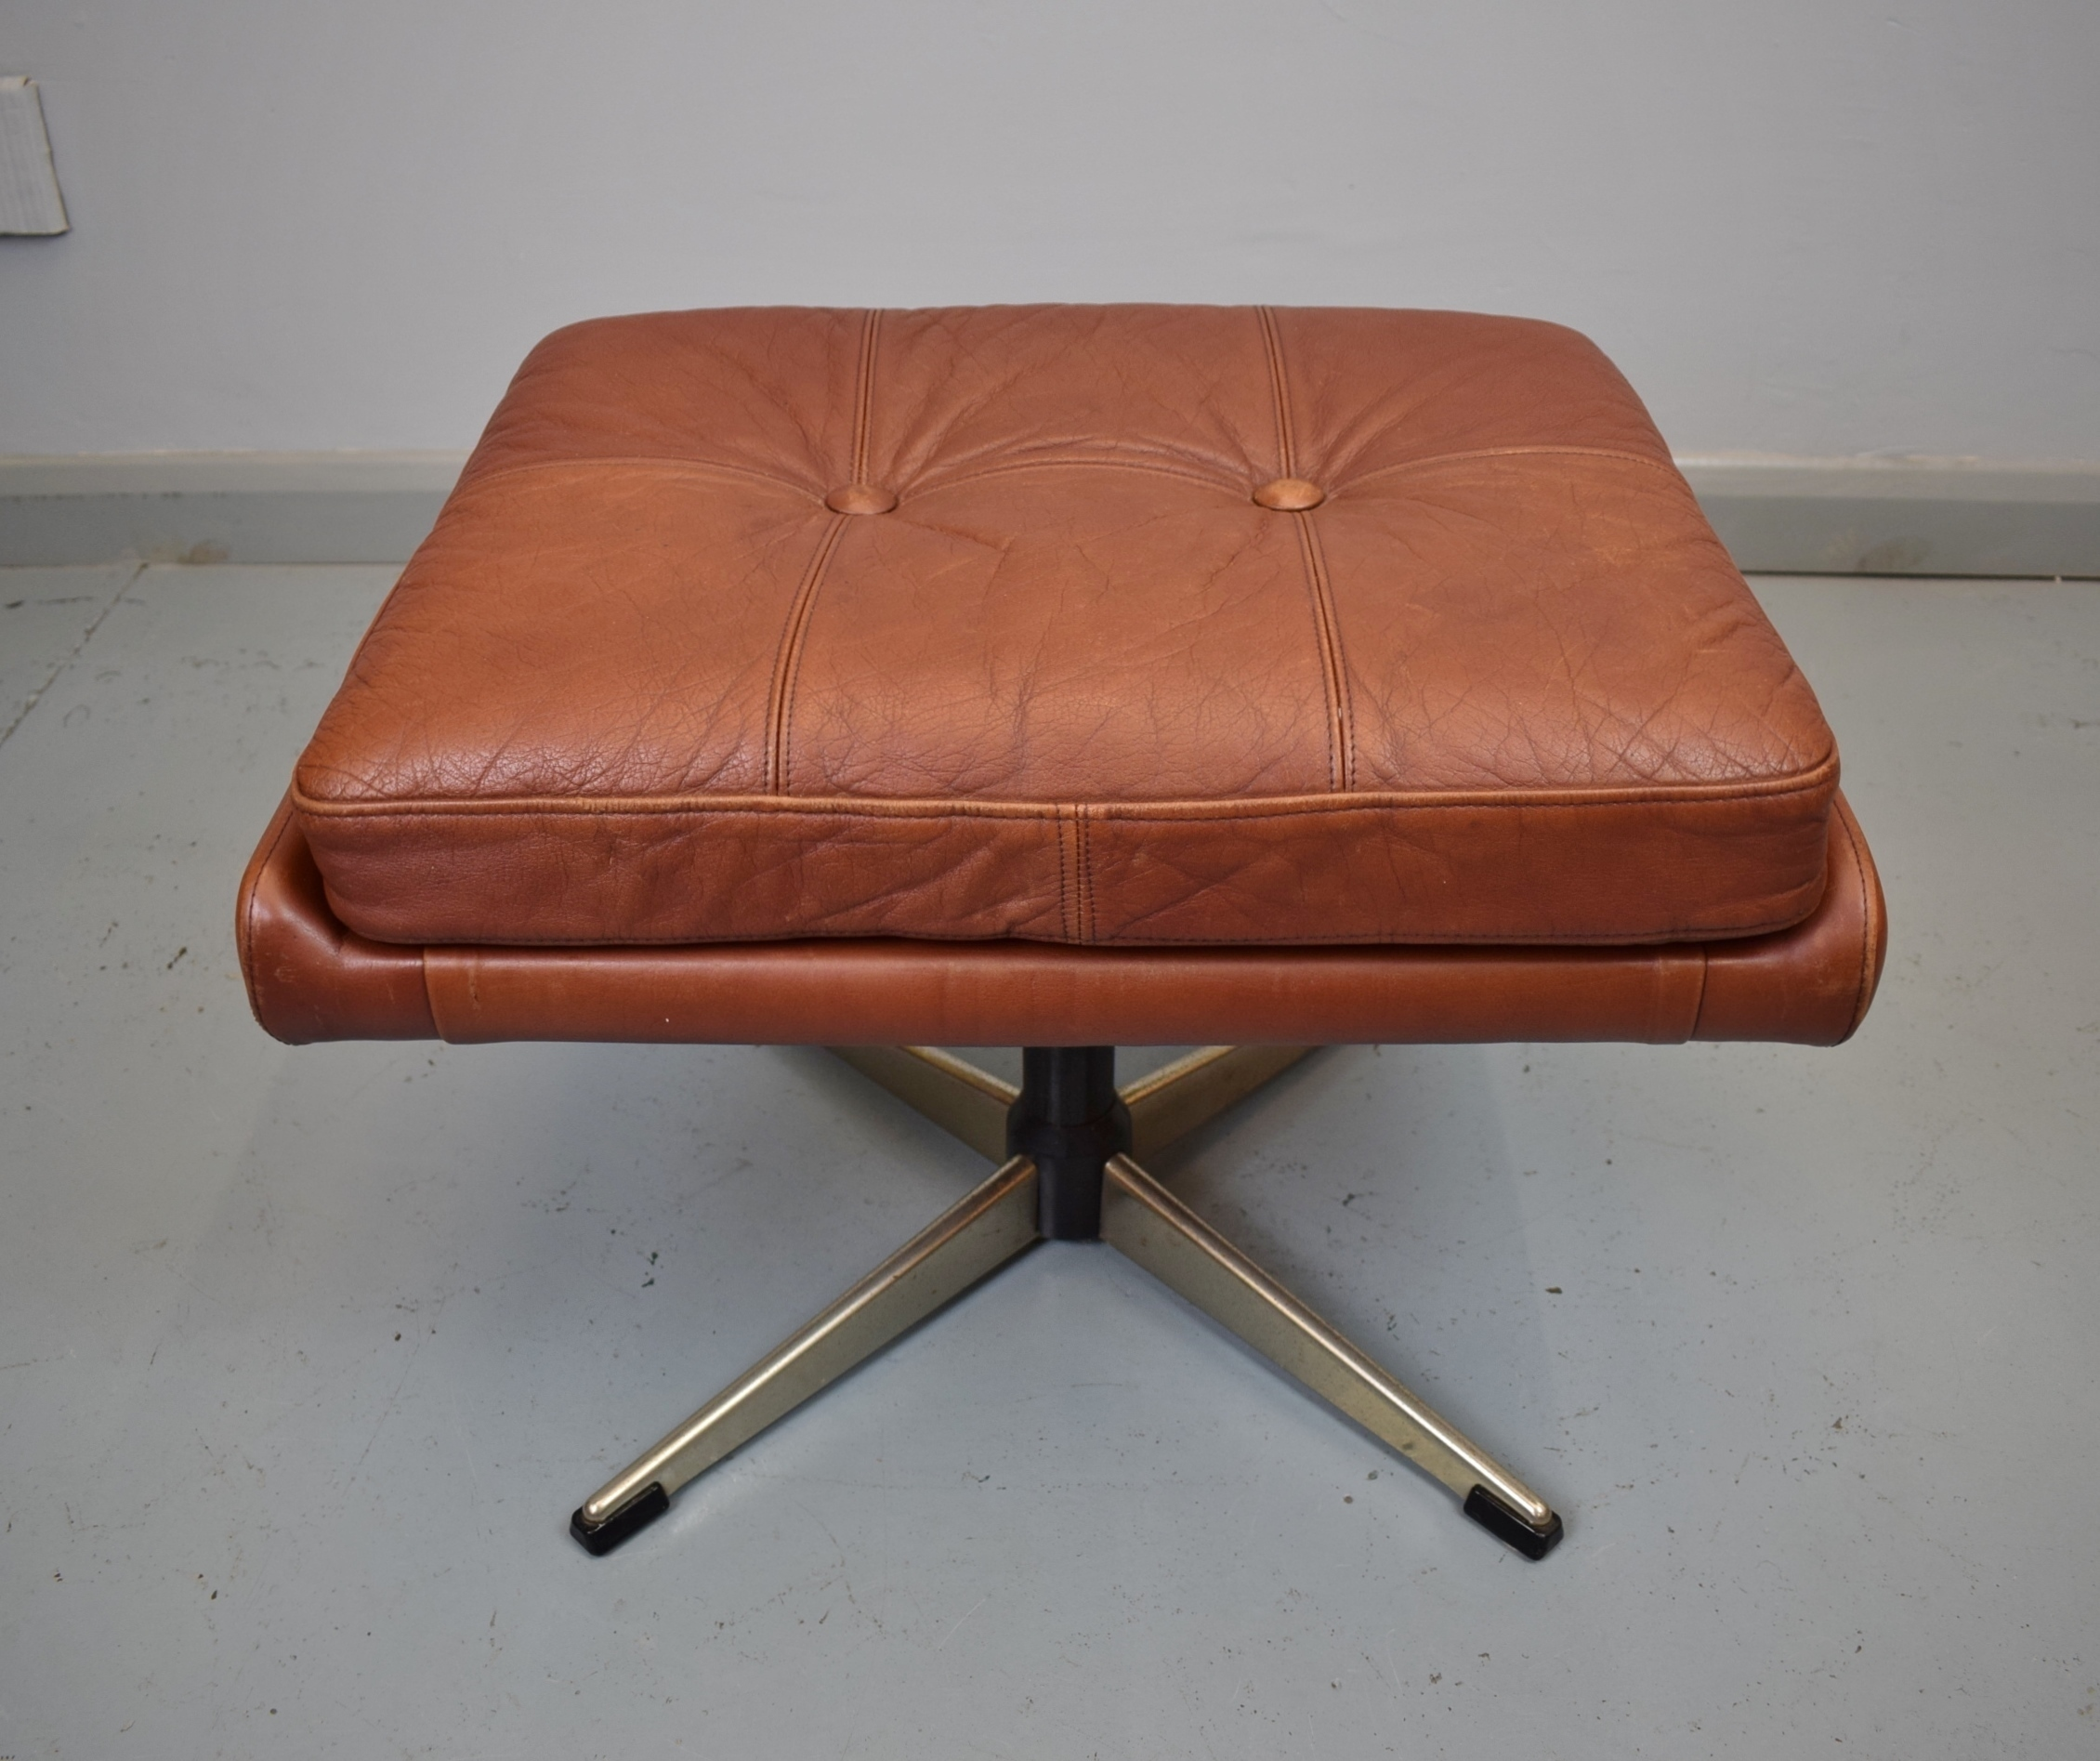 Awesome Mid Century Retro Danish Skippers Mobler Red Leather Swivel Foot Stool Ottoman Lamtechconsult Wood Chair Design Ideas Lamtechconsultcom